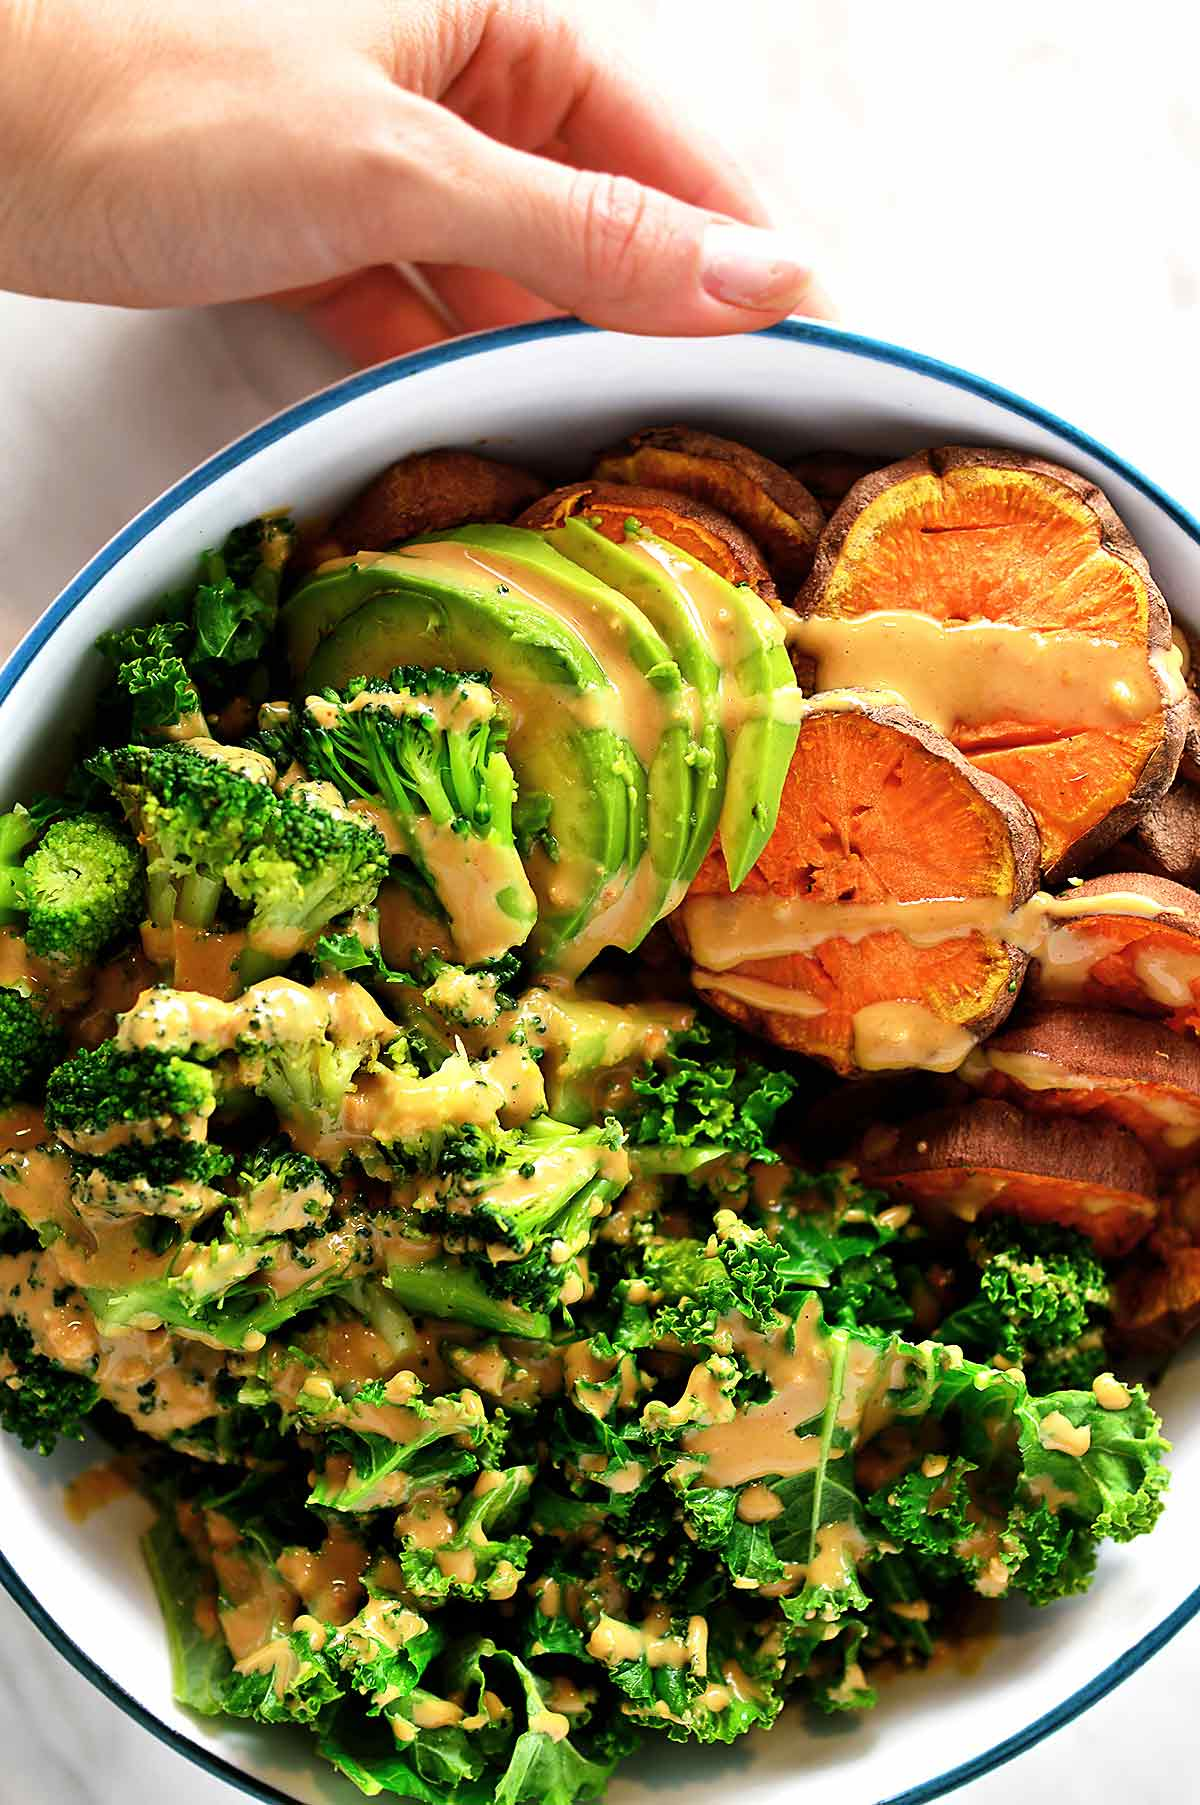 Bowl with sweet potatoes, broccoli and kale